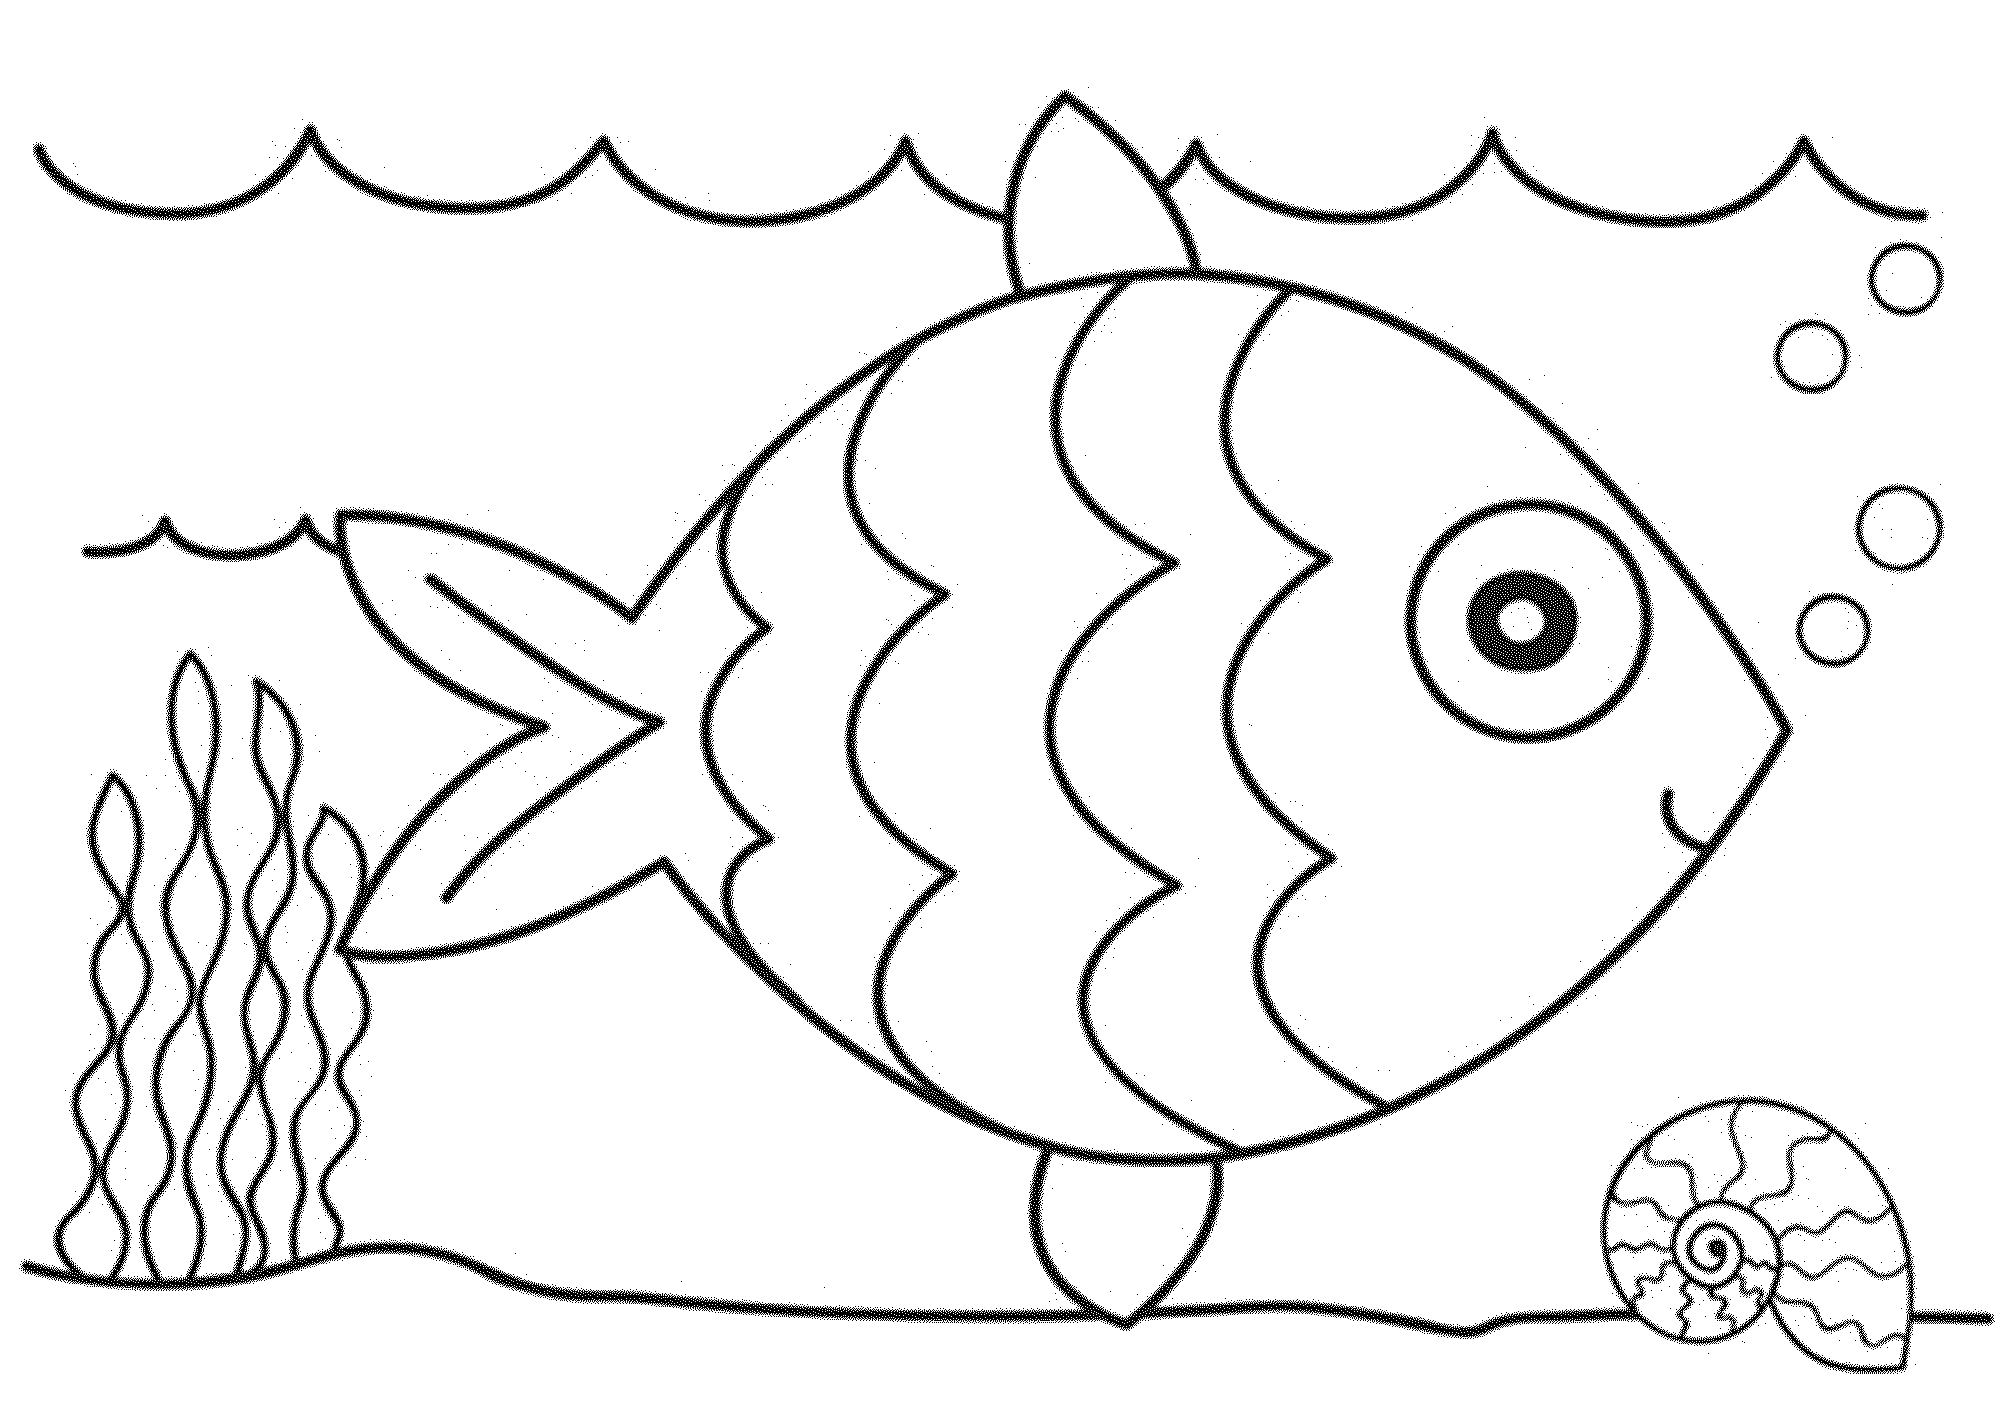 Fish Cartoon Black And White Free Download Clip Art Free Clip Preschool Coloring Pages Kindergarten Coloring Pages Fish Coloring Page